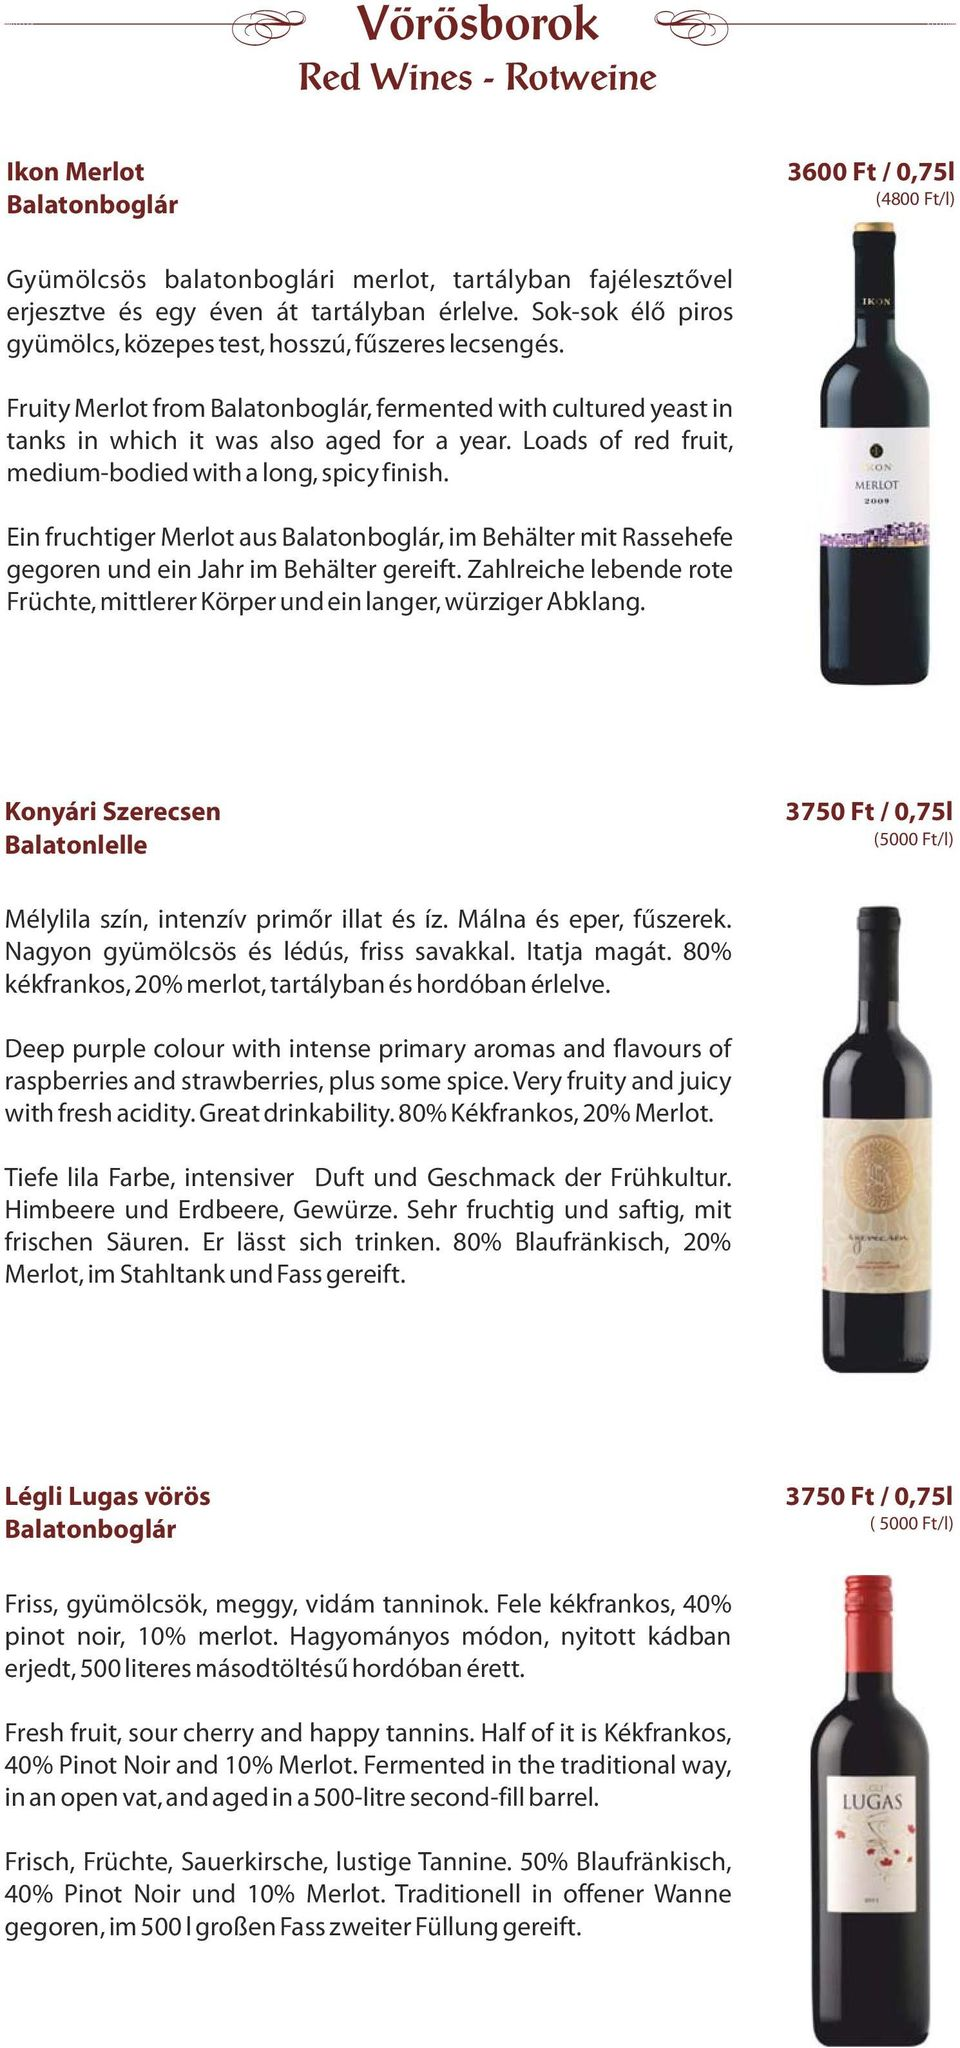 Loads of red fruit, medium-bodied with a long, spicy finish. Ein fruchtiger Merlot aus Balatonboglár, im Behälter mit Rassehefe gegoren und ein Jahr im Behälter gereift.